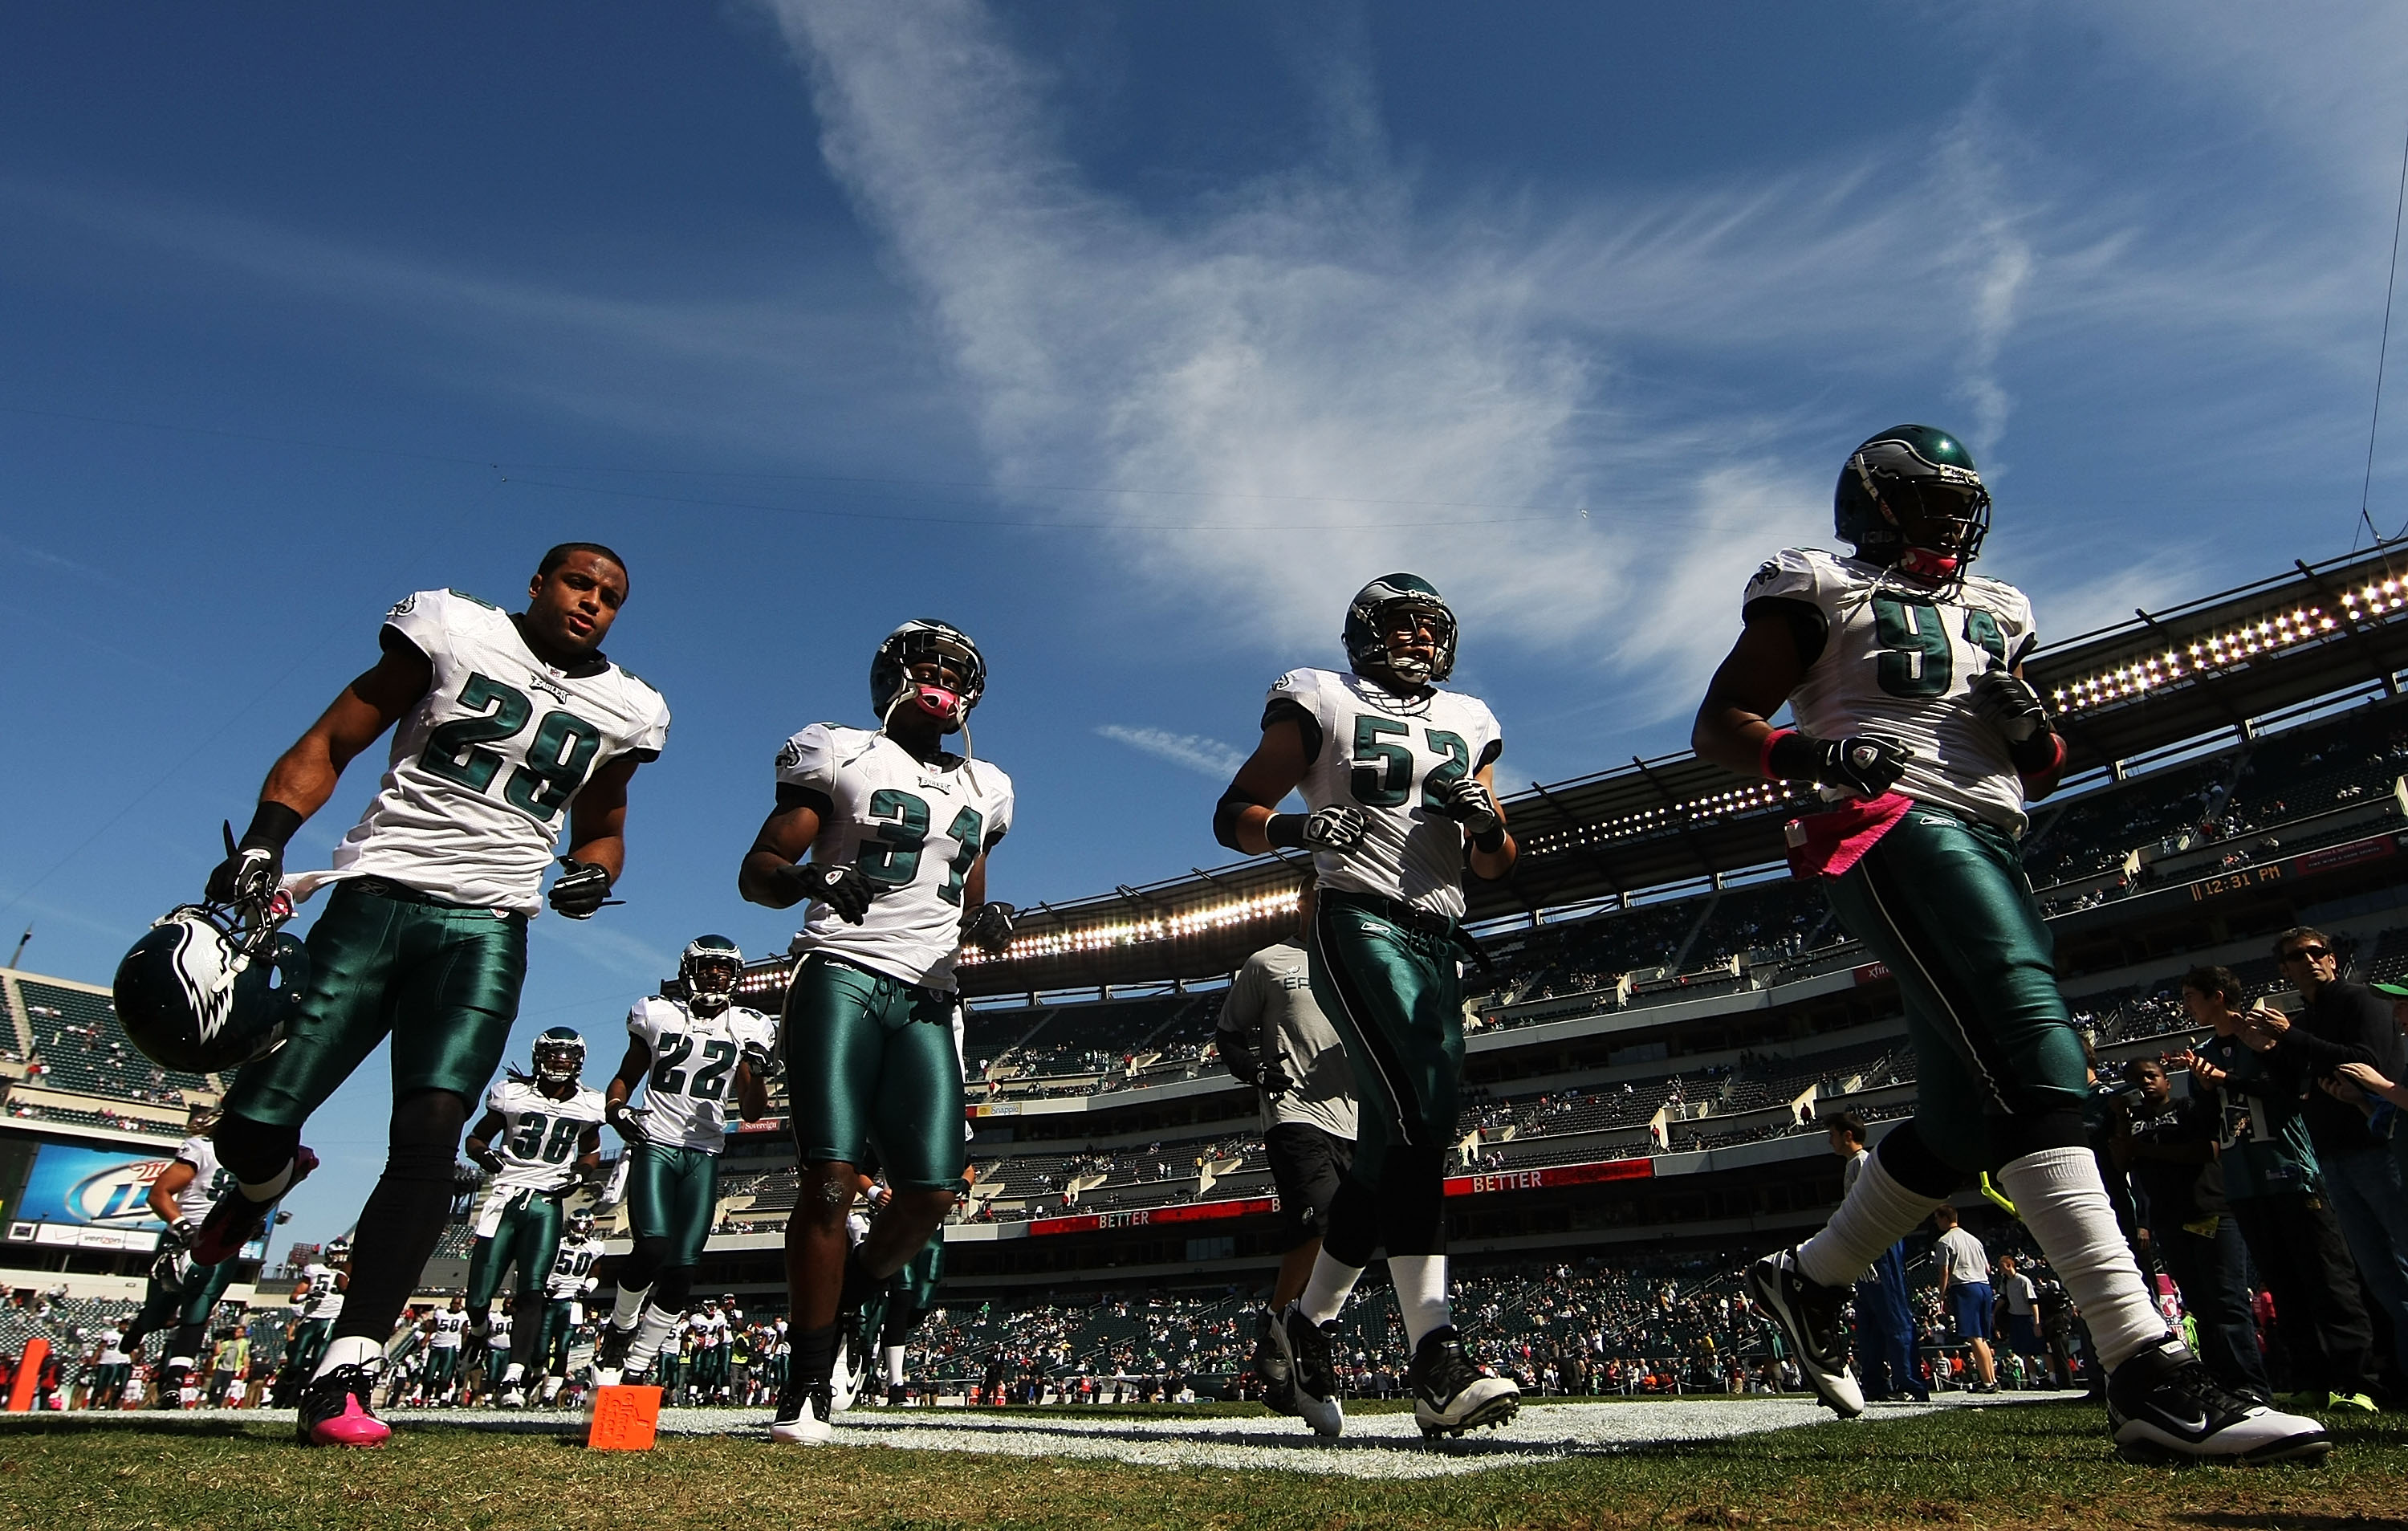 PHILADELPHIA - OCTOBER 17:  The Philadelphia Eagles exit the field after warmups against the Atlanta Falcons before their game at Lincoln Financial Field on October 17, 2010 in Philadelphia, Pennsylvania.  (Photo by Al Bello/Getty Images)